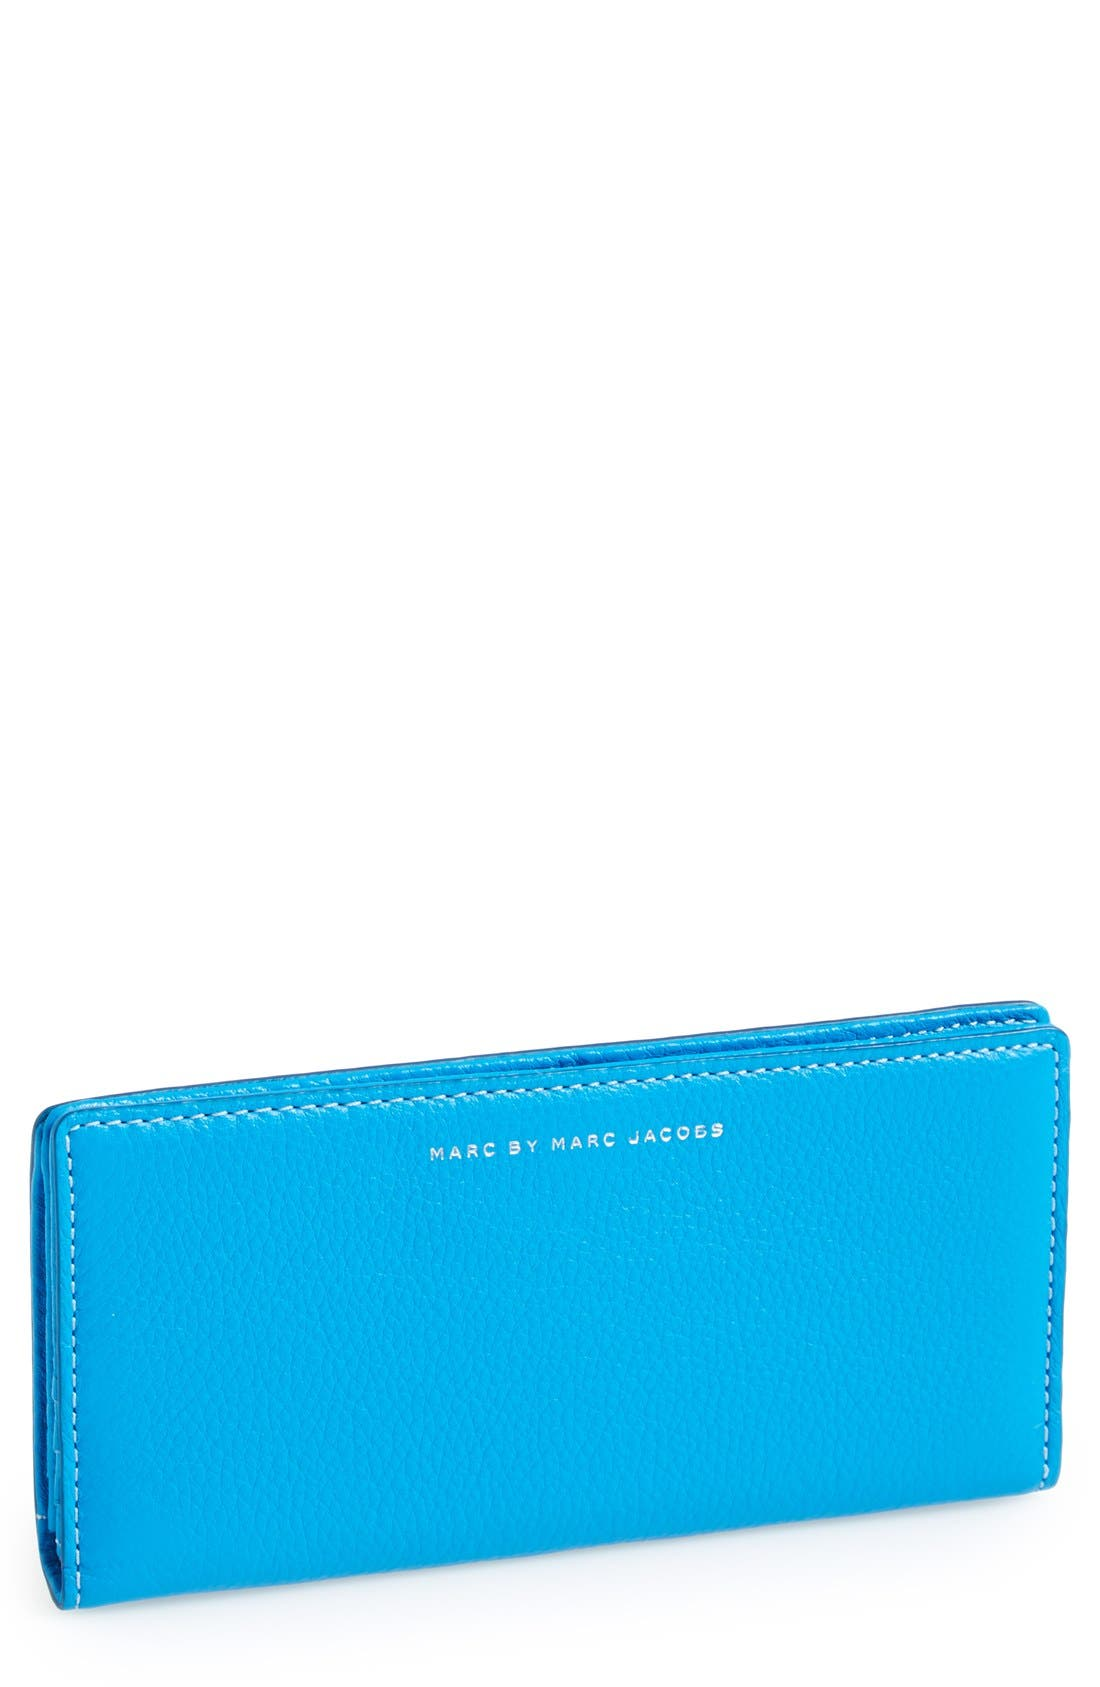 Alternate Image 1 Selected - MARC BY MARC JACOBS 'Sophisticato - Tomoko' Wallet